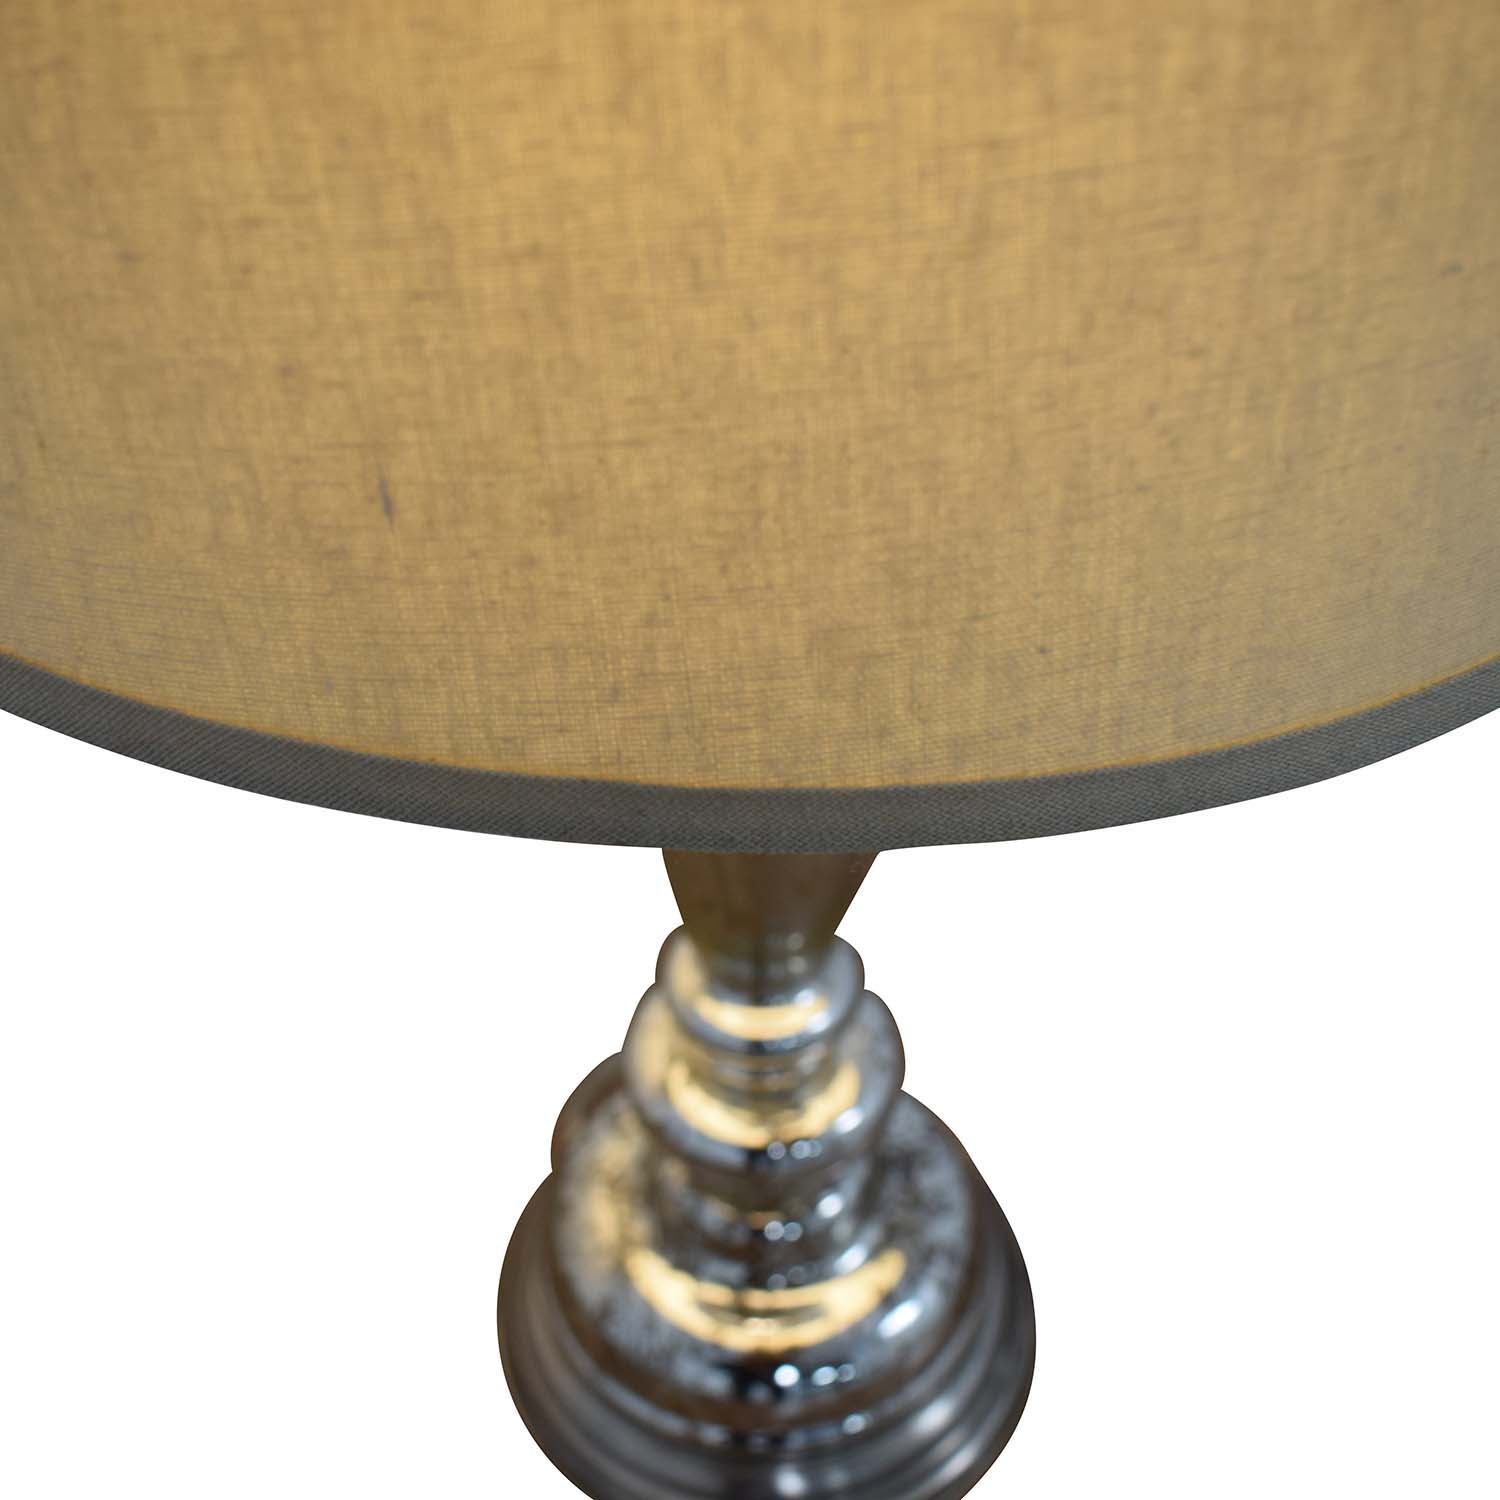 Pottery Barn Pottery Barn Leera Antique Mercury Glass Table Lamp